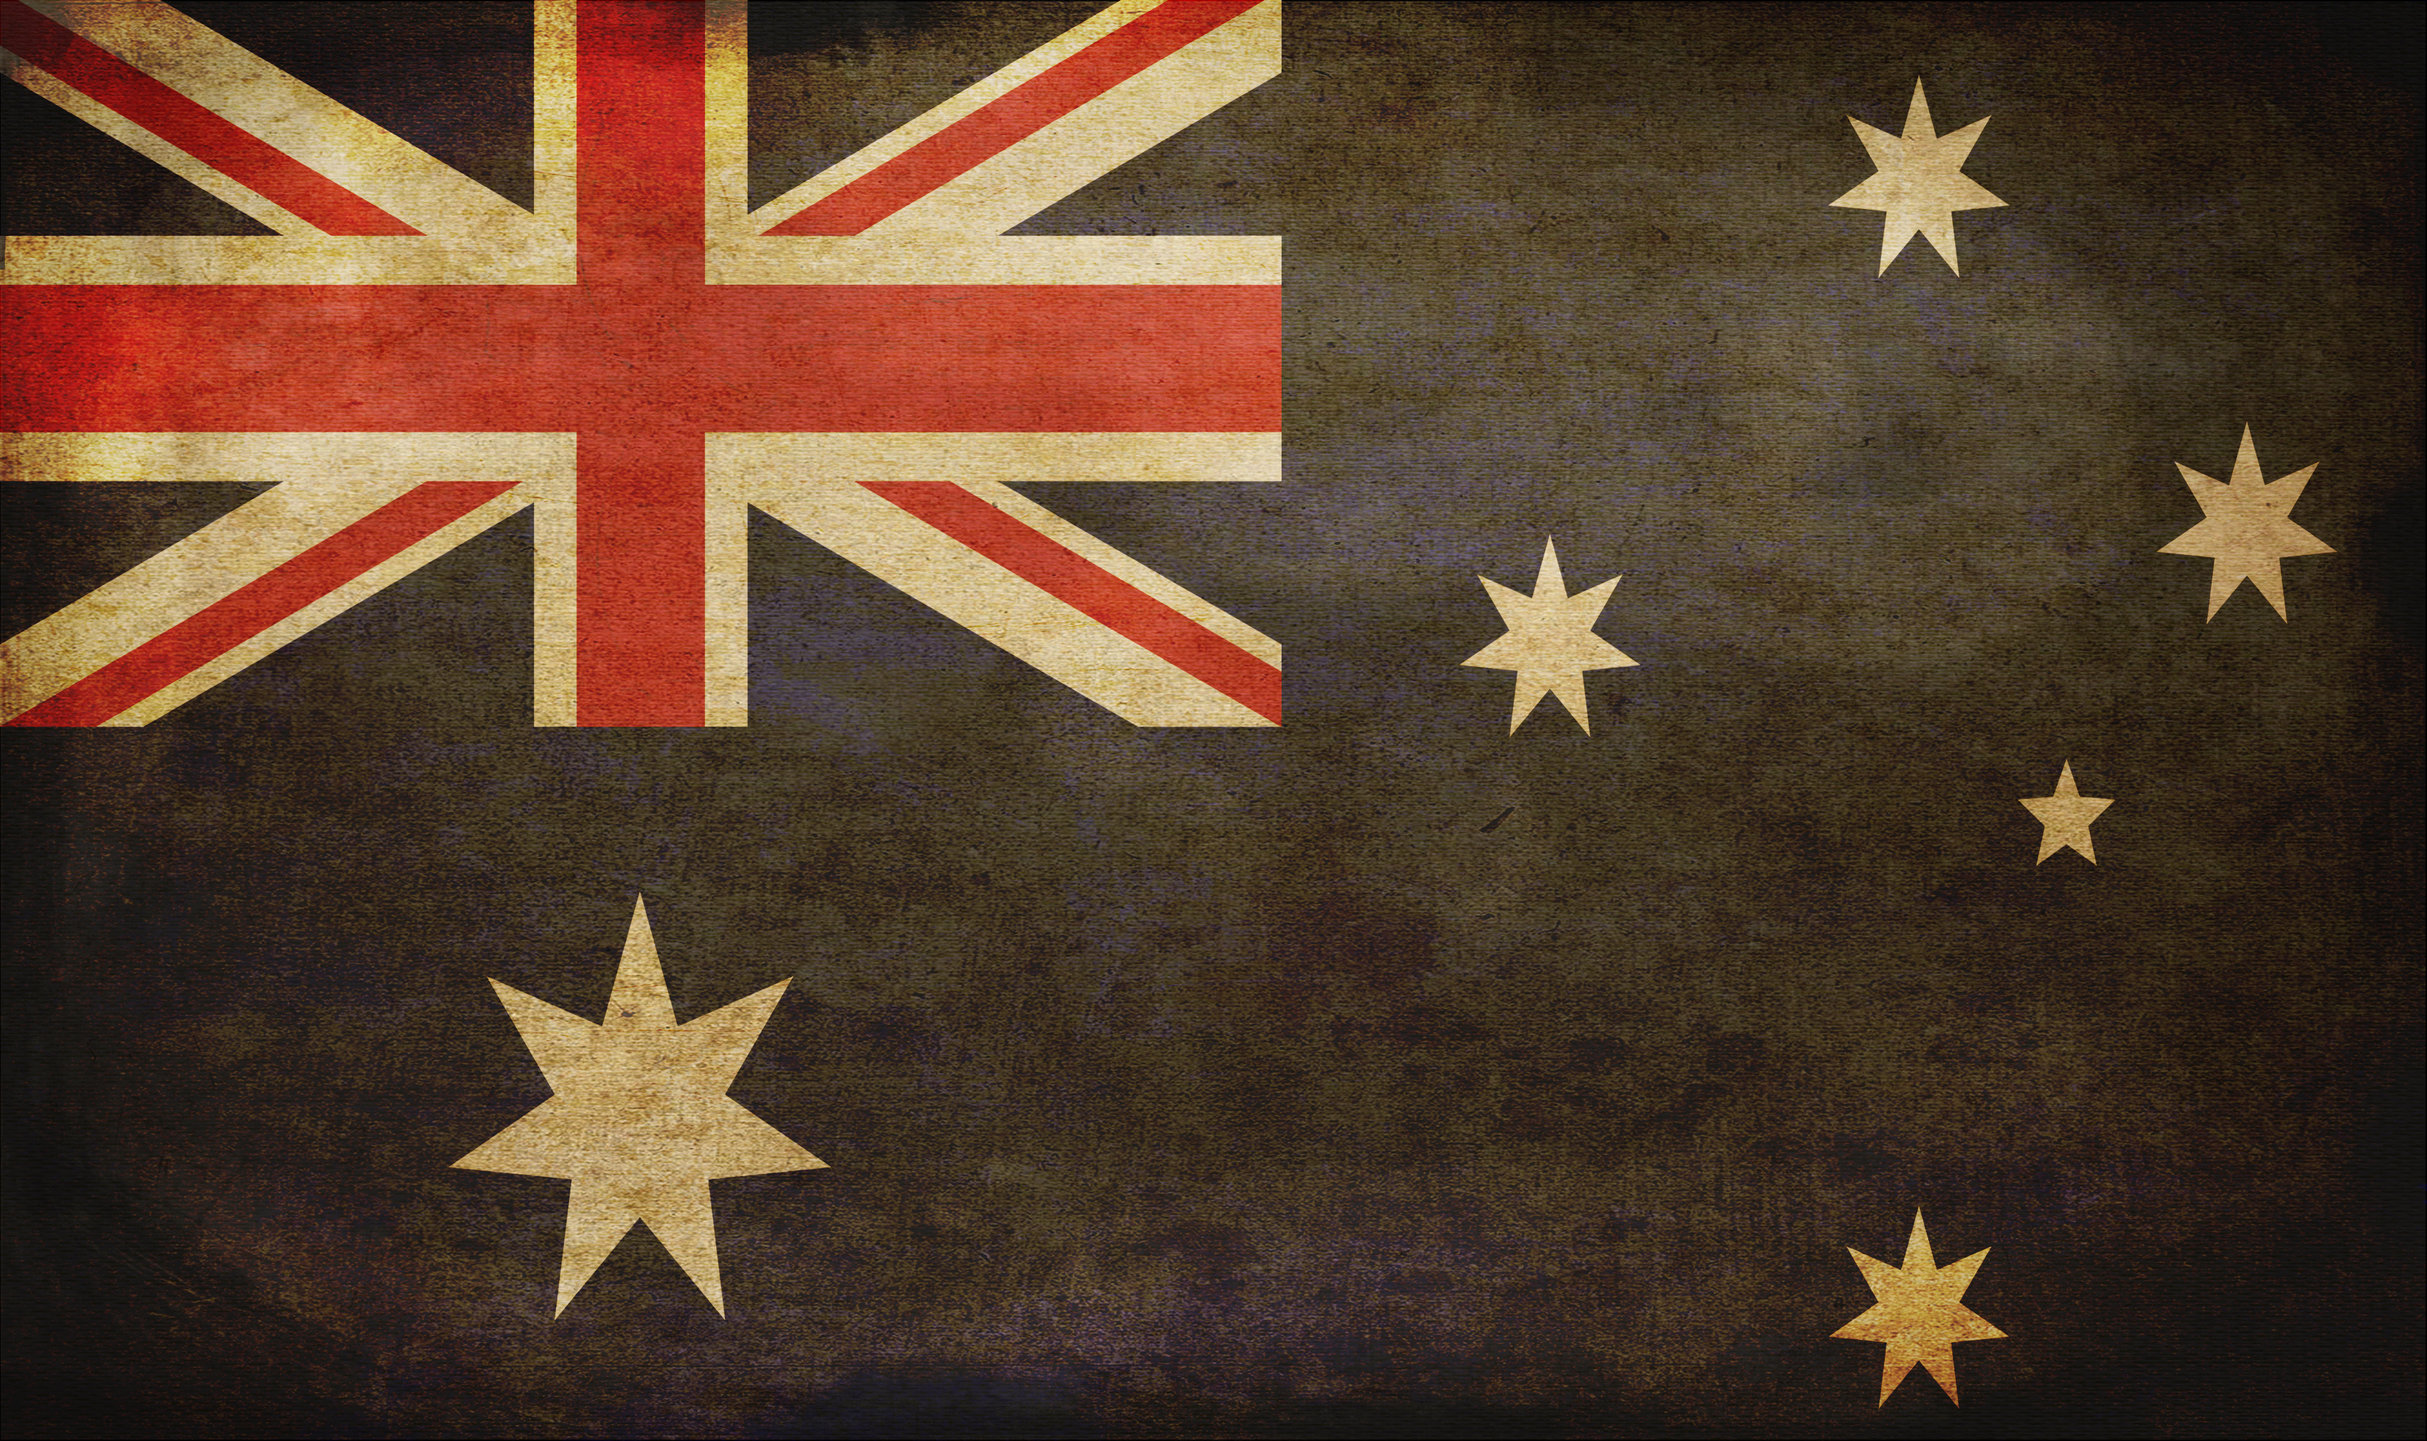 Australia - Grunge by tonemapped on DeviantArt